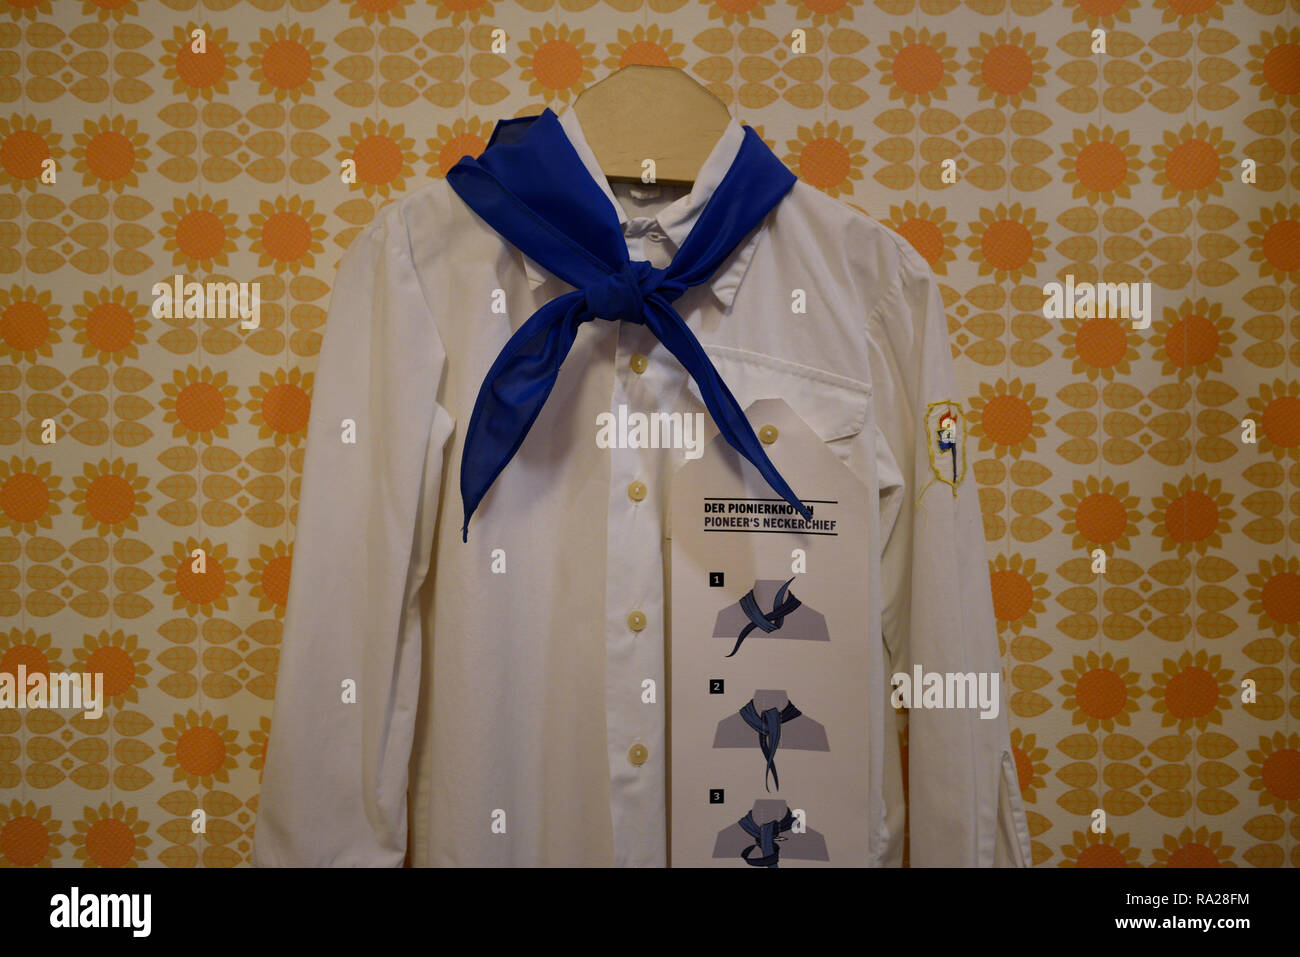 Uniform of the Ernst Thälmann Pioneer Organisation from the former GDR consisting the white short & the blue triangular necktie. DDR museum, Berlin. - Stock Image